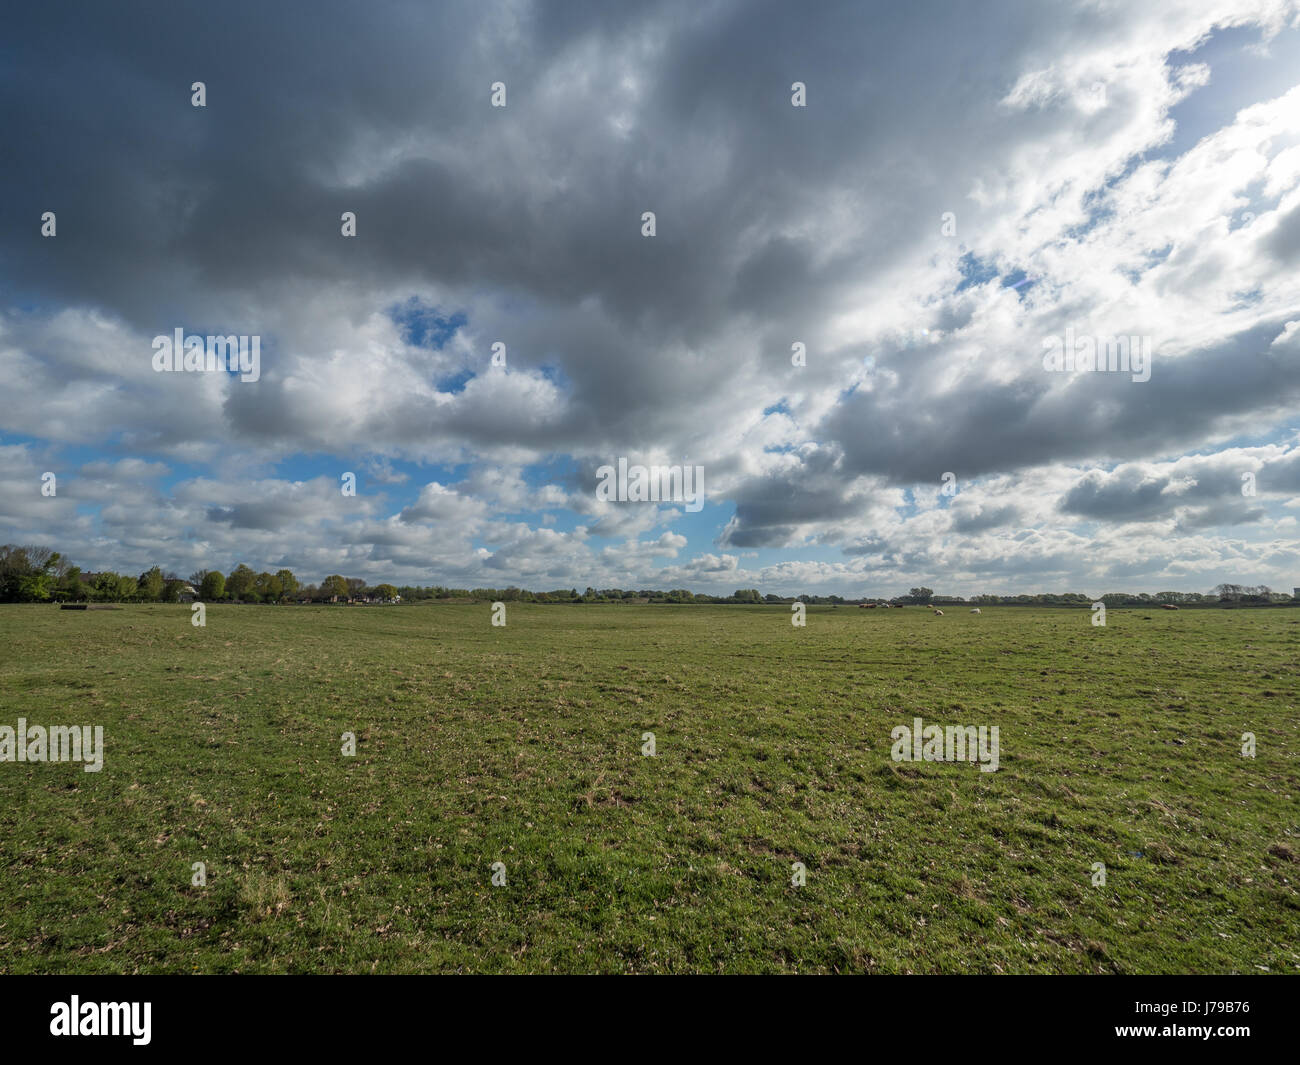 green meadow and blue sky with big clouds, Wisseler Duenen, Kalkar, Germany - Stock Image